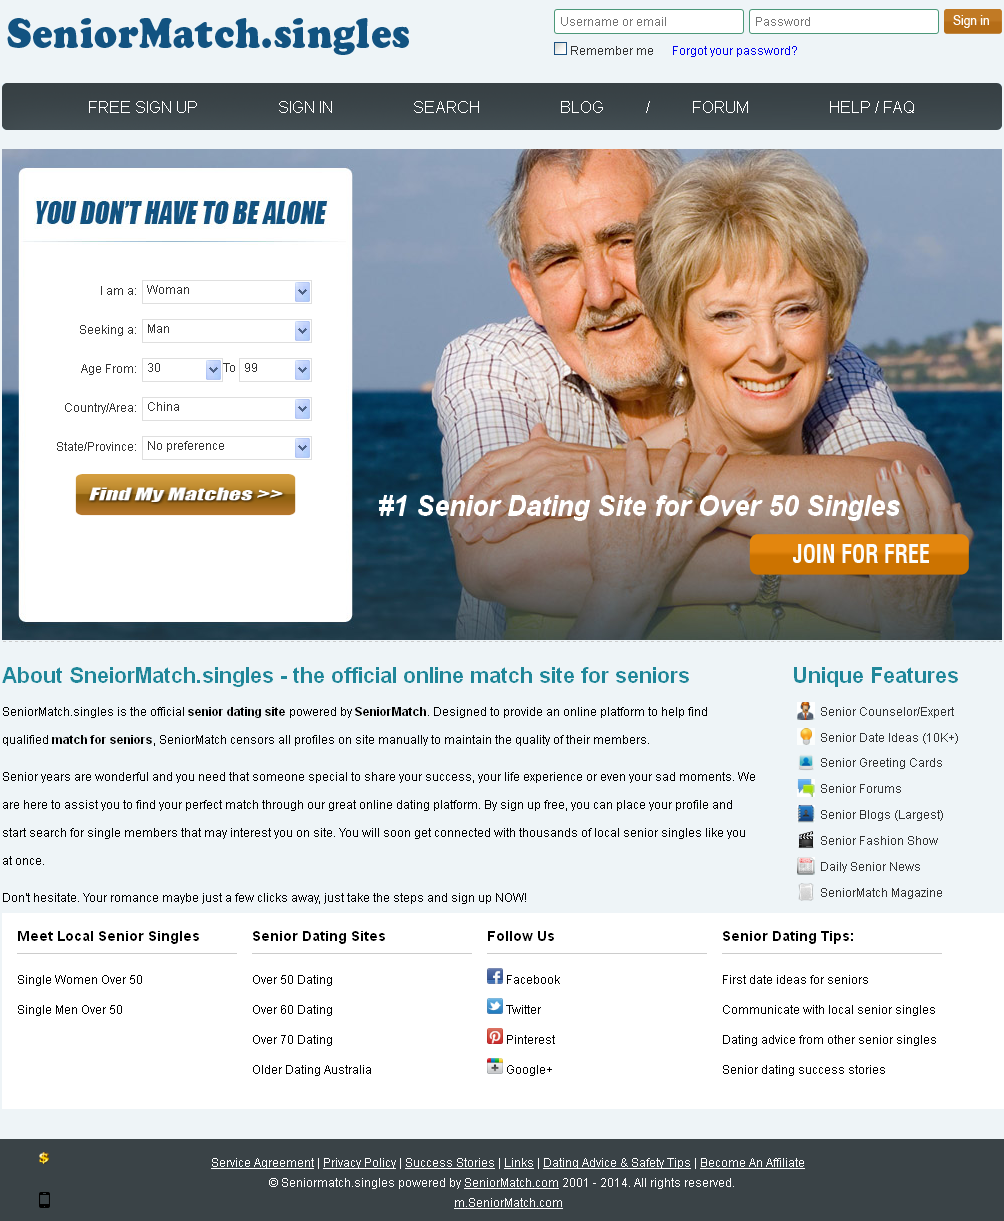 prichard senior dating site Register for free and search for a local date anonymously now we are a safe, secure and confidential online dating agency search for over fourties looking for dates right now.